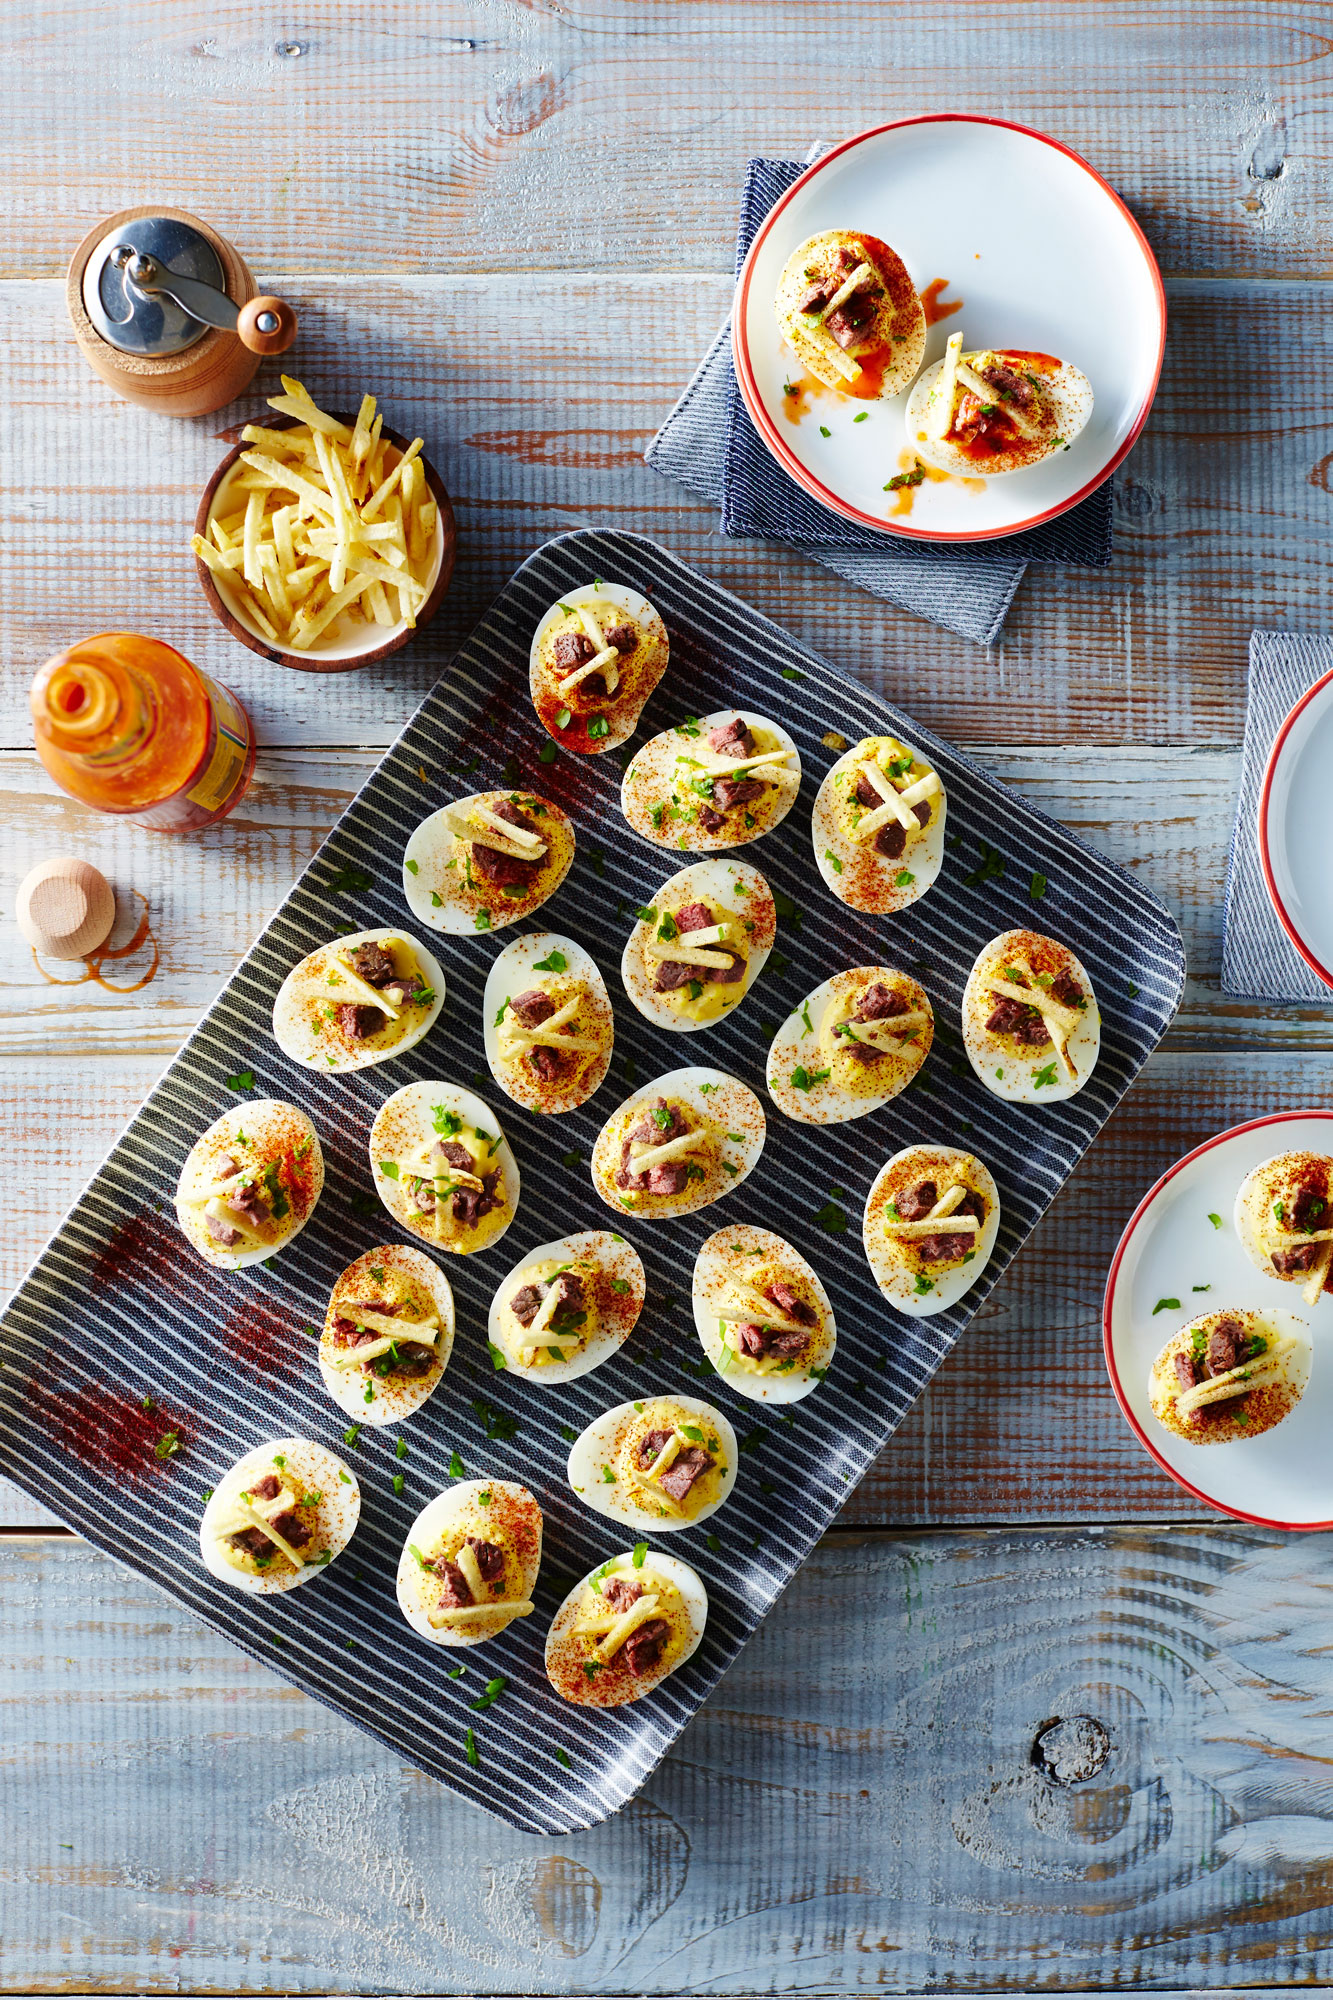 Steak and Deviled Eggs image